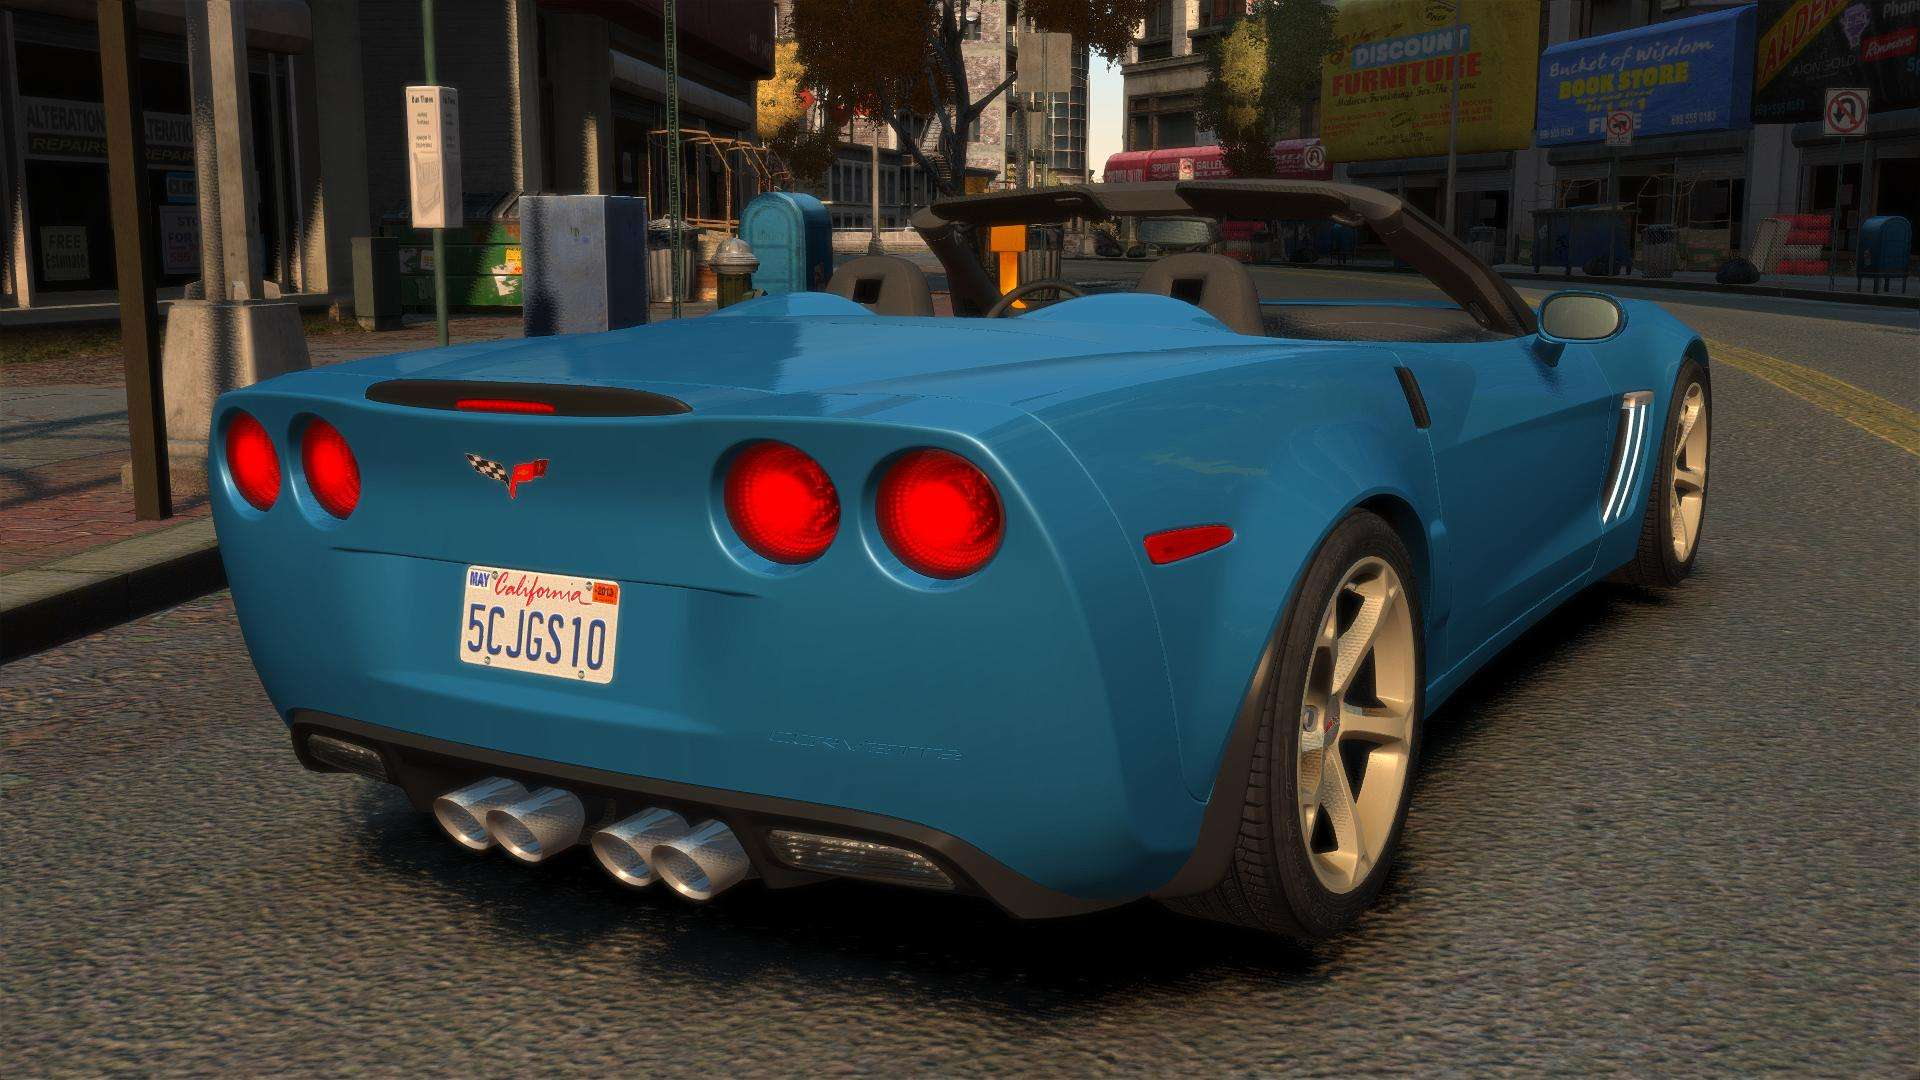 Chevrolet Corvette C6 2010 Convertible v2.0 para GTA 4